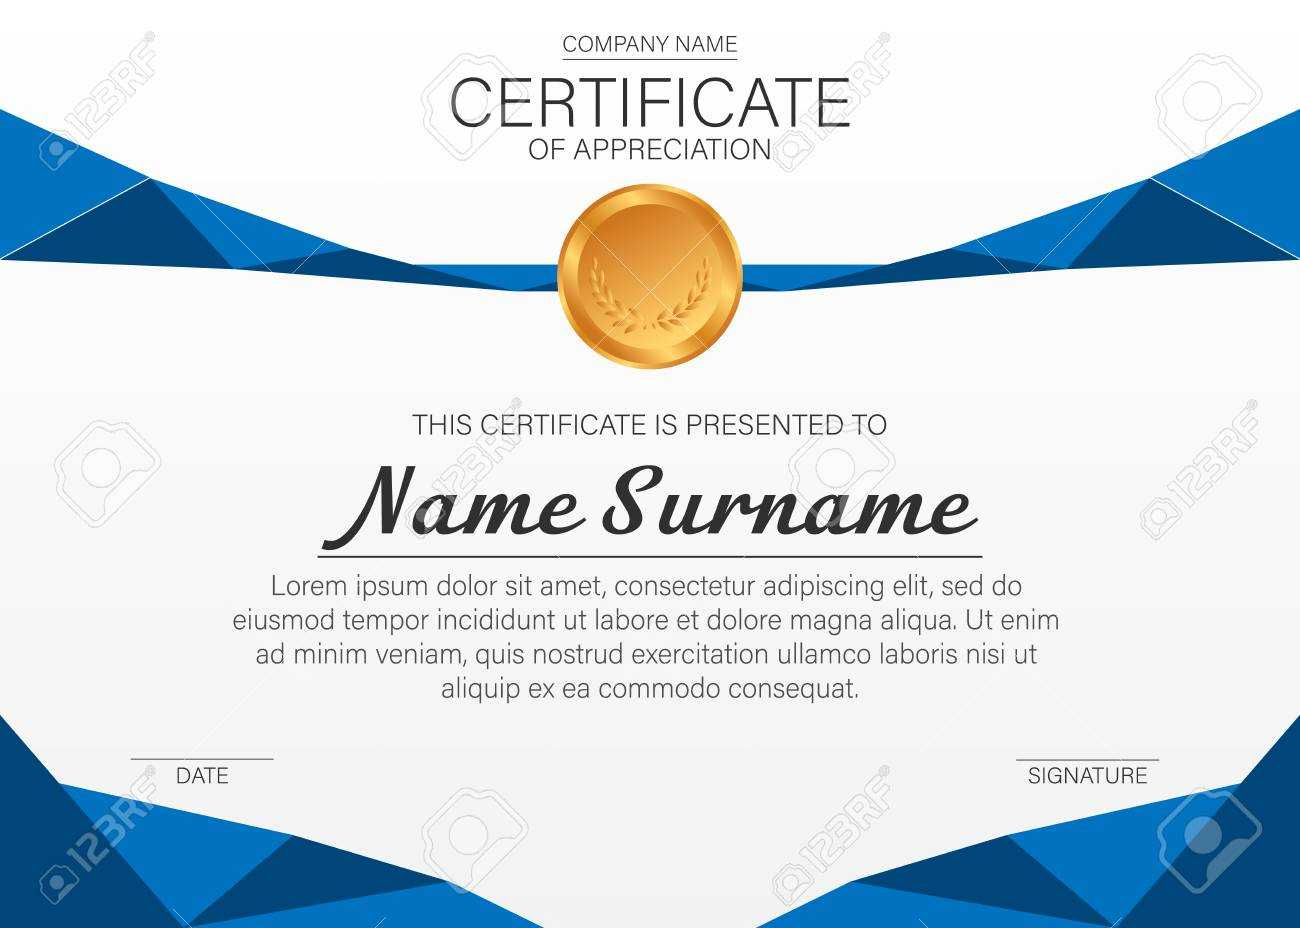 Beautiful Certificate Template. Vector Design For Award, Diploma intended for Beautiful Certificate Templates